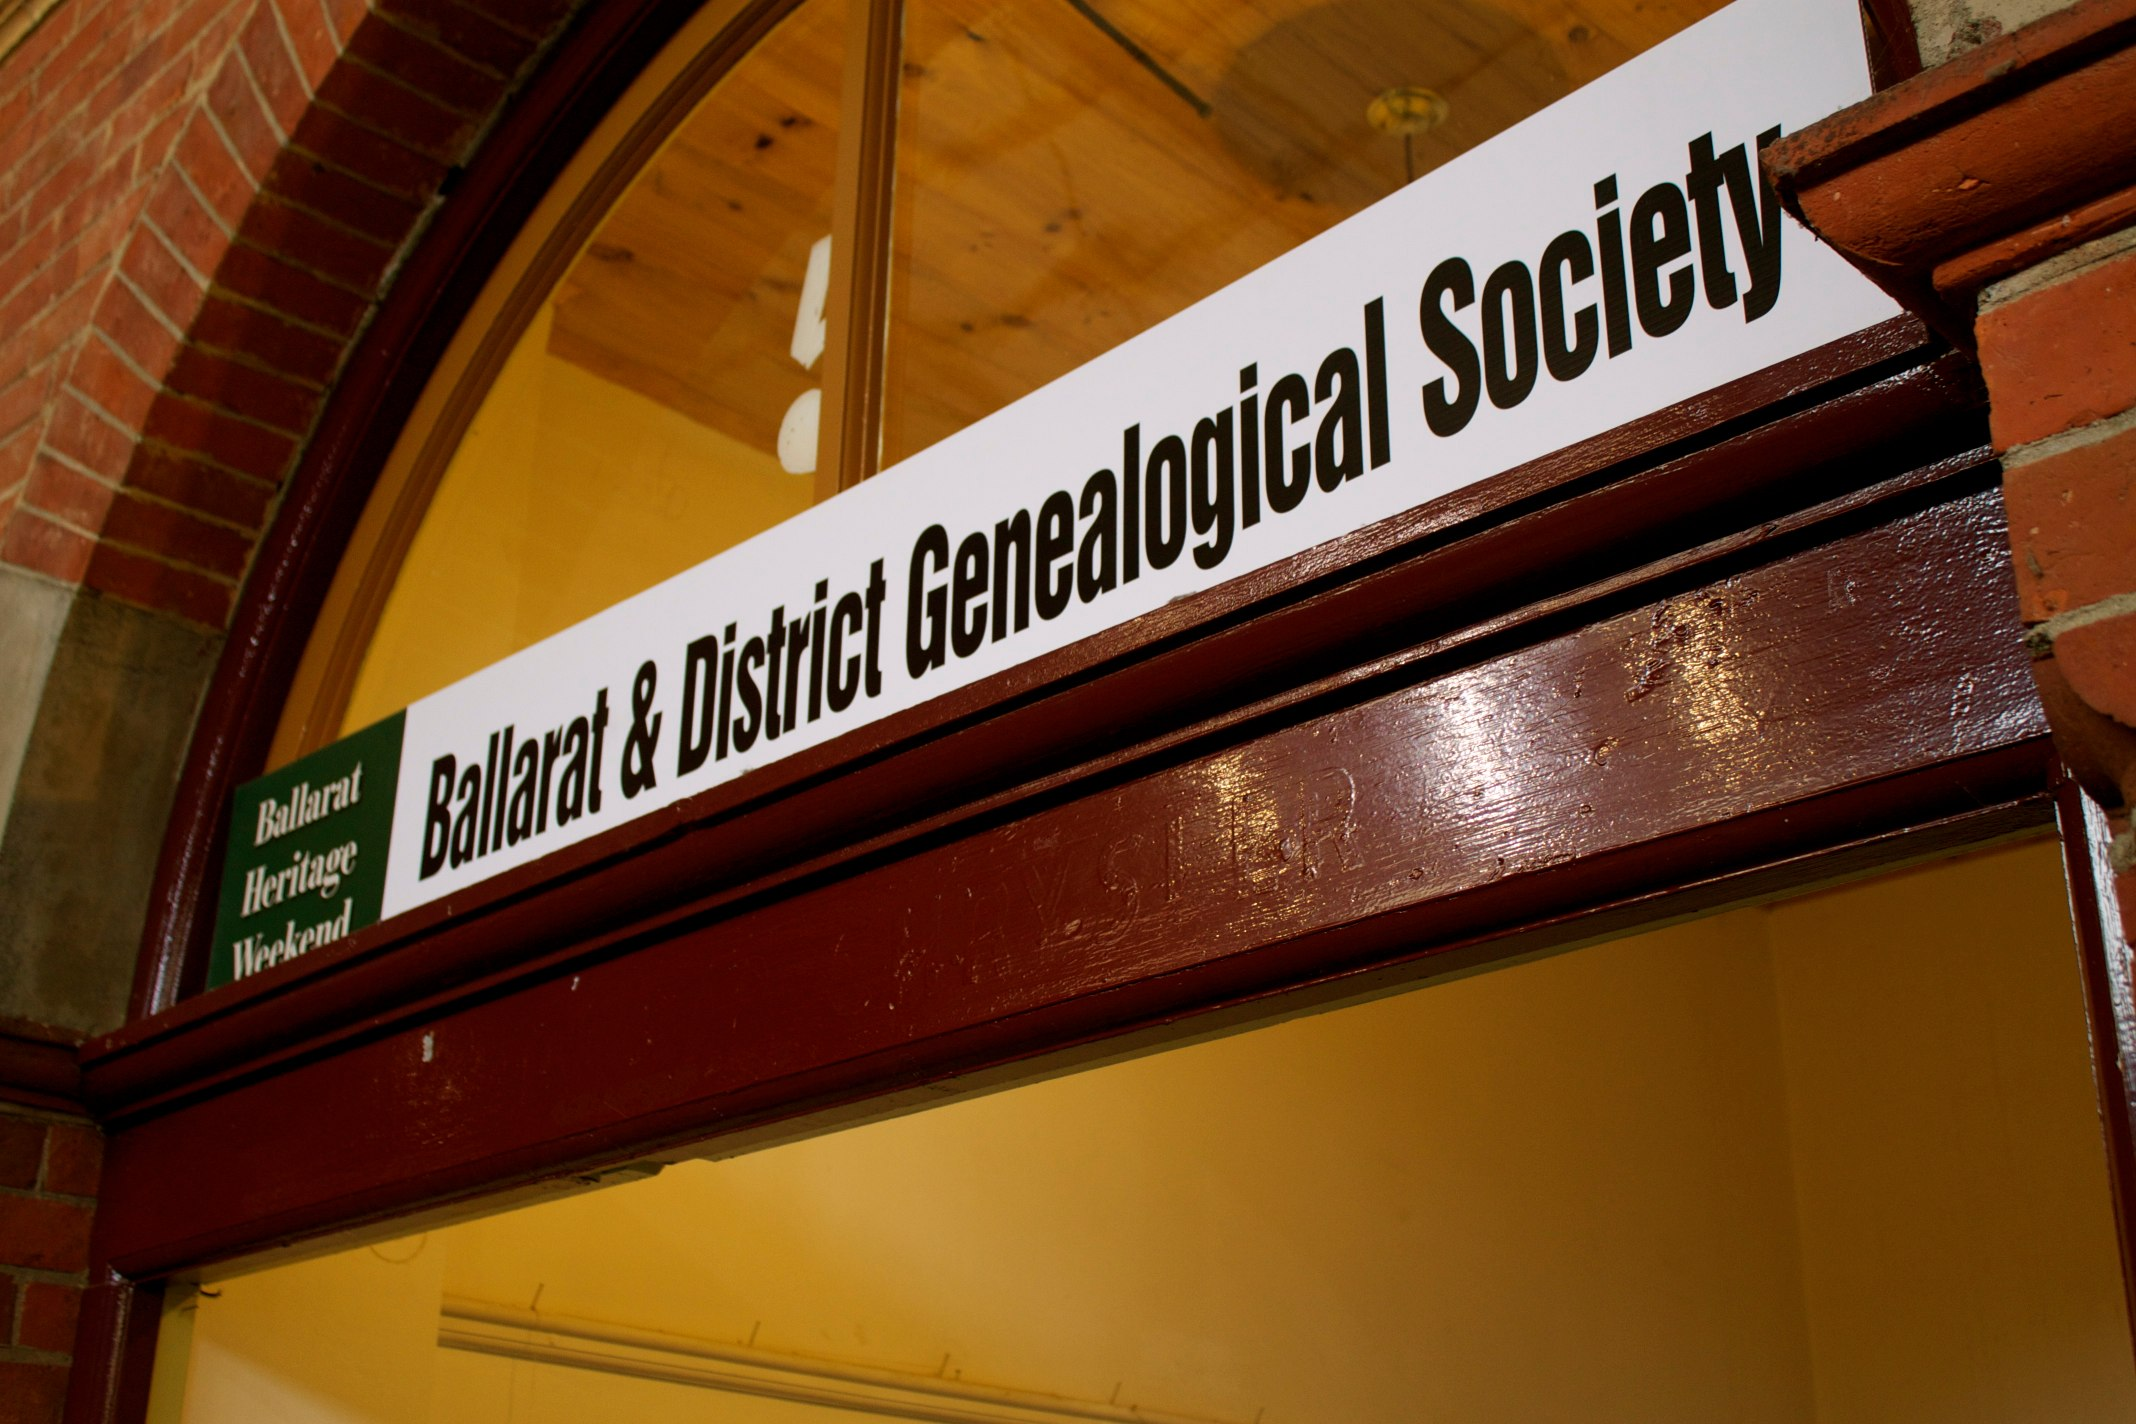 Ballarat and District Genealogical Society